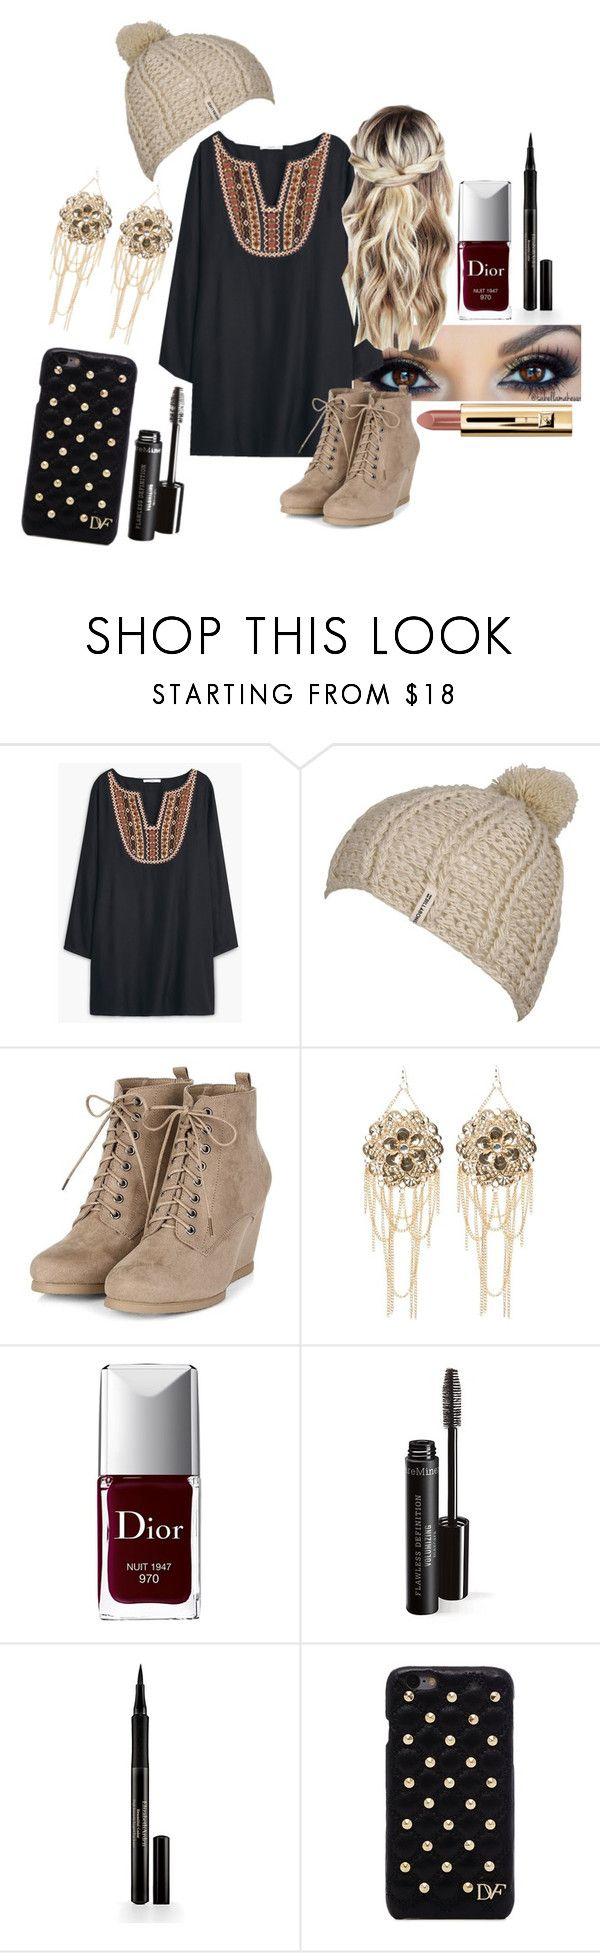 """""""Bo-ho Beauty"""" by thenextbigthing8357 ❤ liked on Polyvore featuring MANGO, Billabong, Bebe, Christian Dior, Elizabeth Arden and Diane Von Furstenberg"""